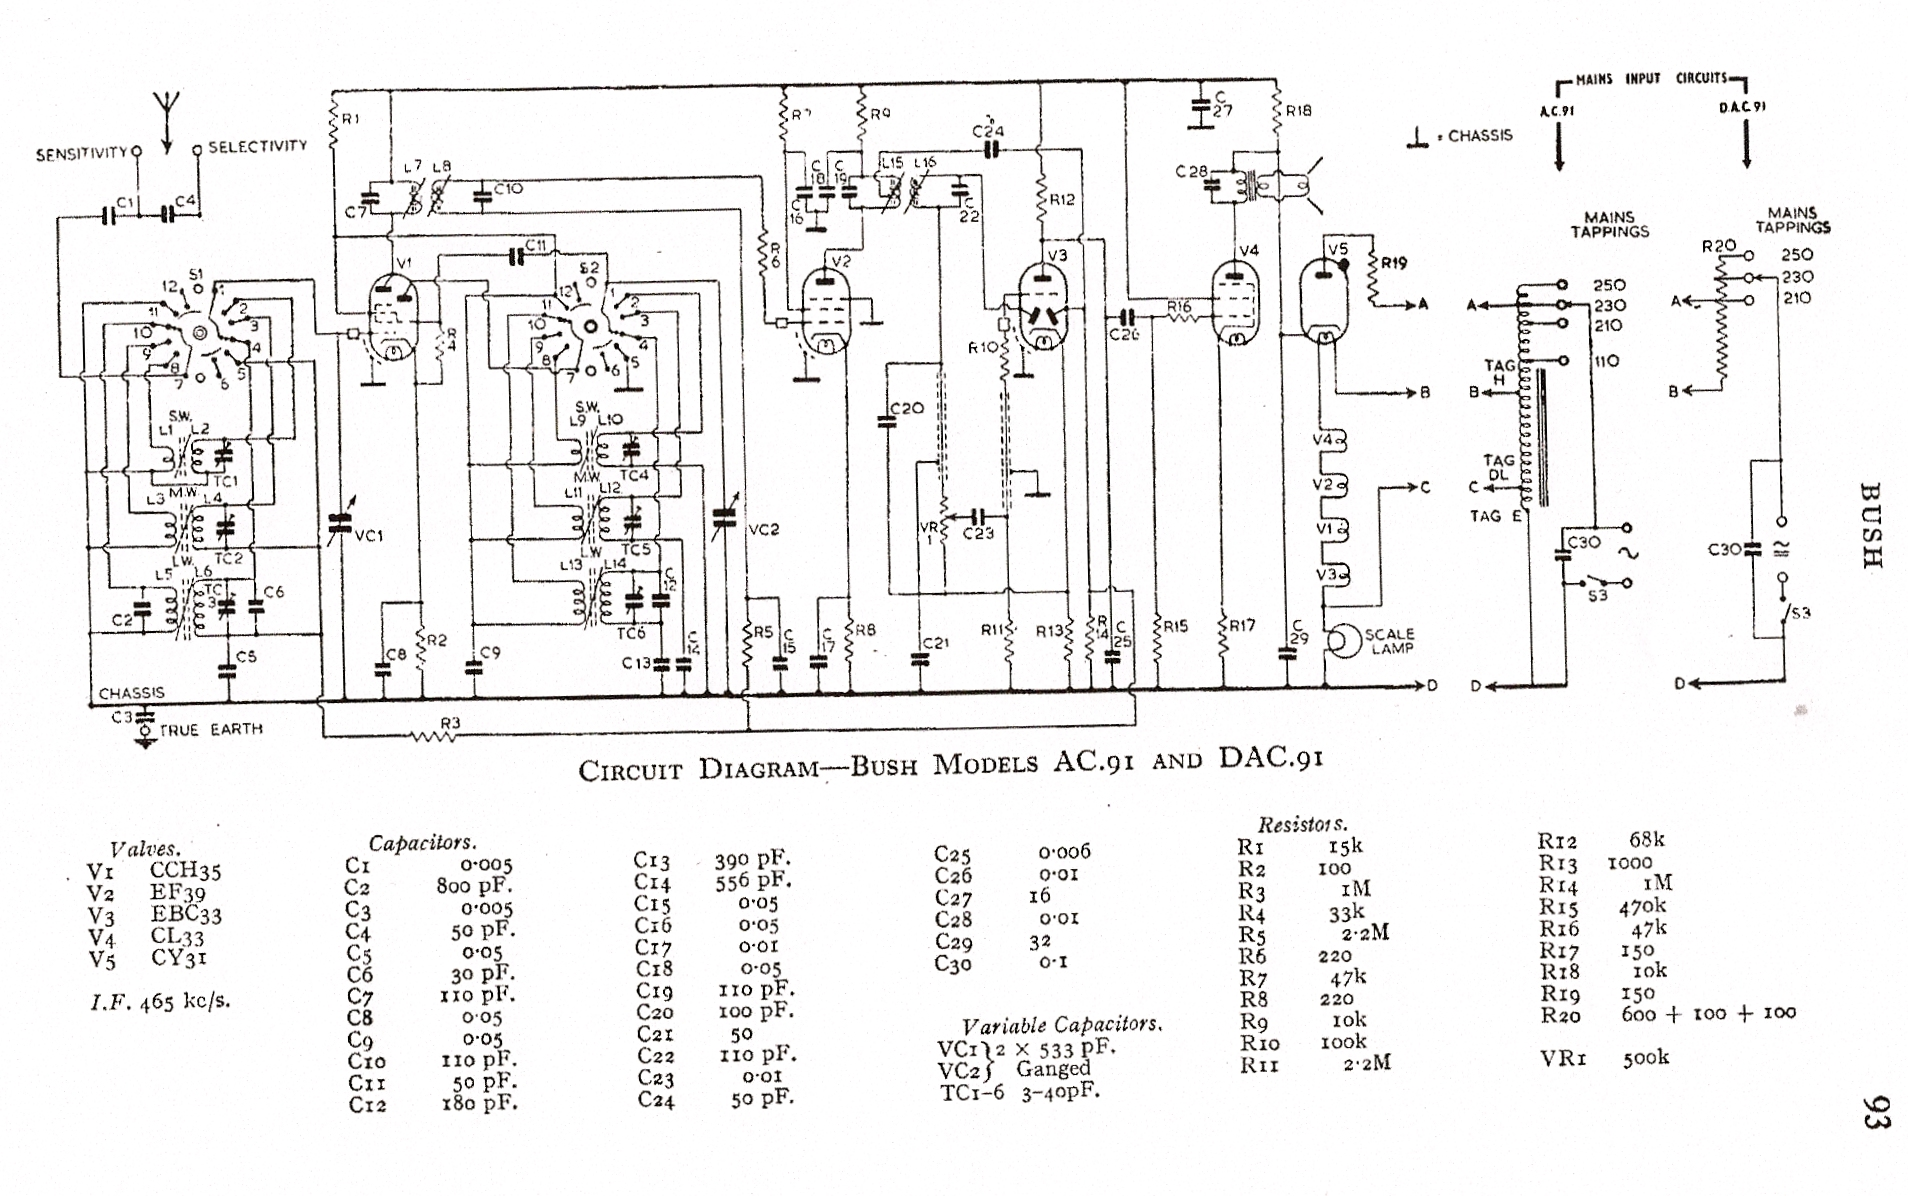 Bush AC91 Schematic